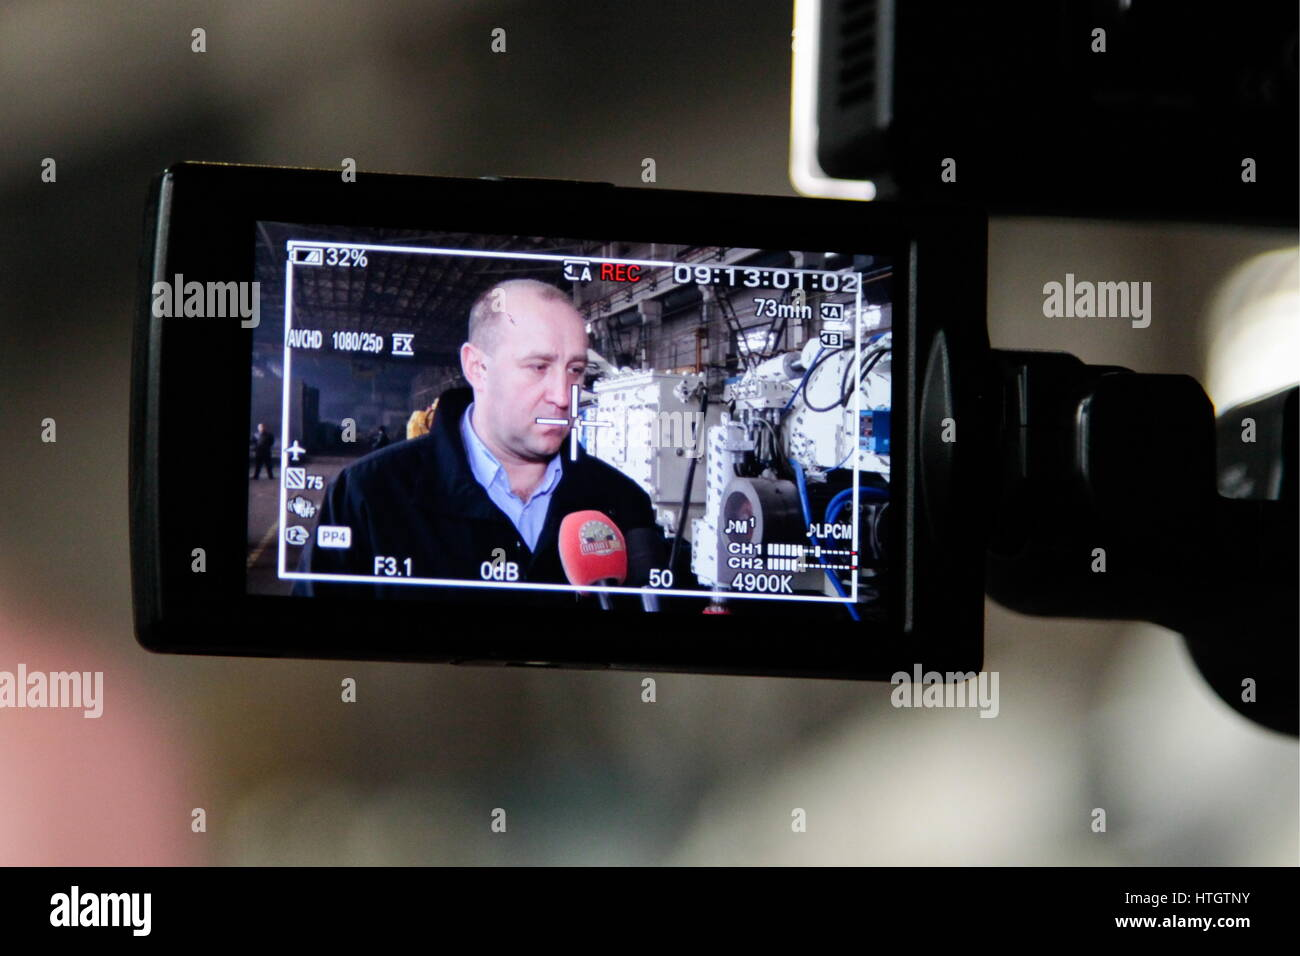 Donetsk, Ukraine. 14th Mar, 2017. Alexei Granovsky (on the screen), acting industry and trade minister of the Donetsk - Stock Image